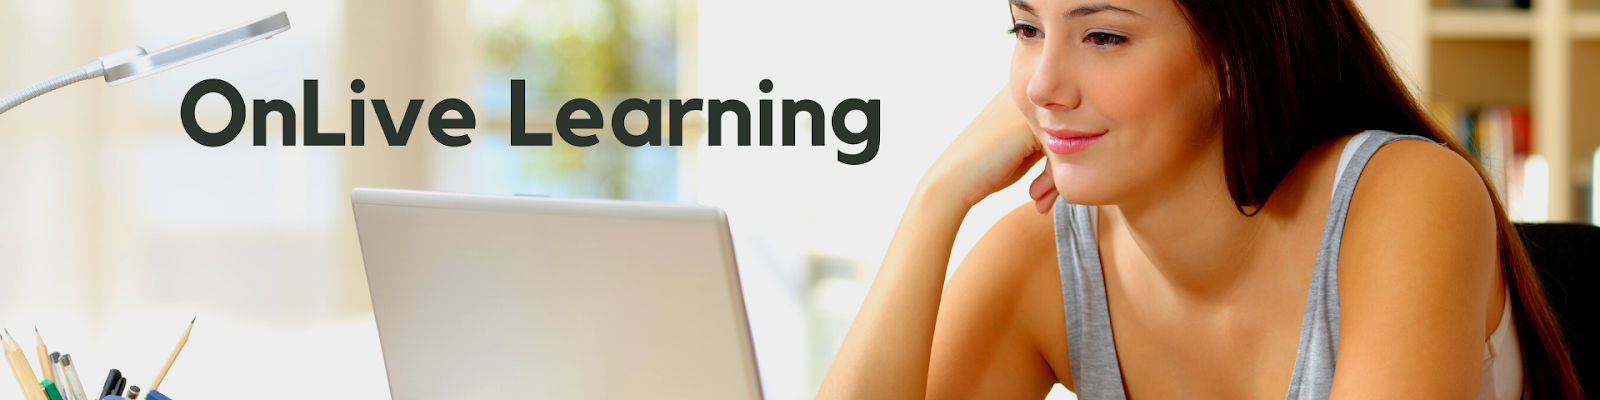 Bite sized online learning